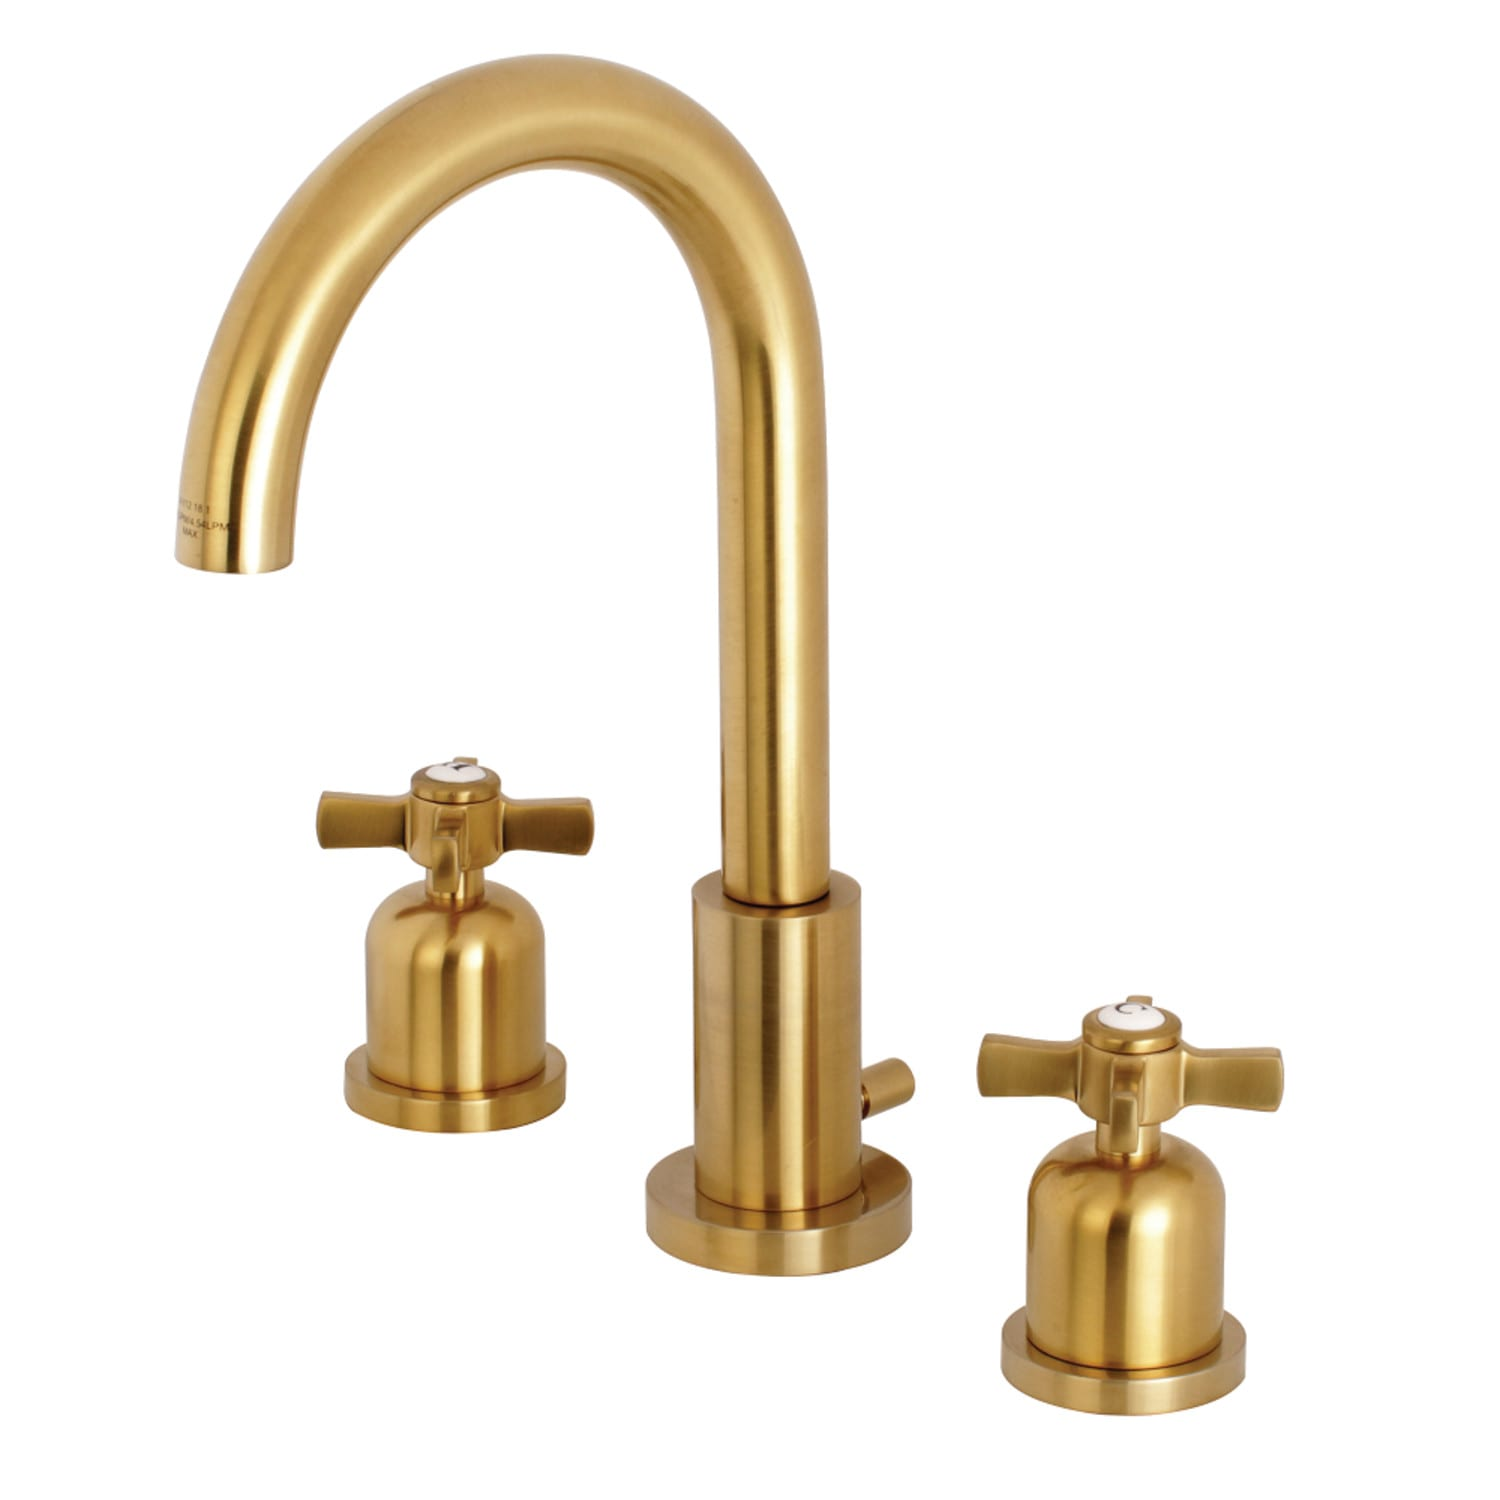 Kingston Brass FSC8923ZX  Millennium 1 2 GPM Deck Mounted Bathroom Faucet. Kingston Brass FSC8923ZX Satin Brass Millennium 1 2 GPM Deck Mounted